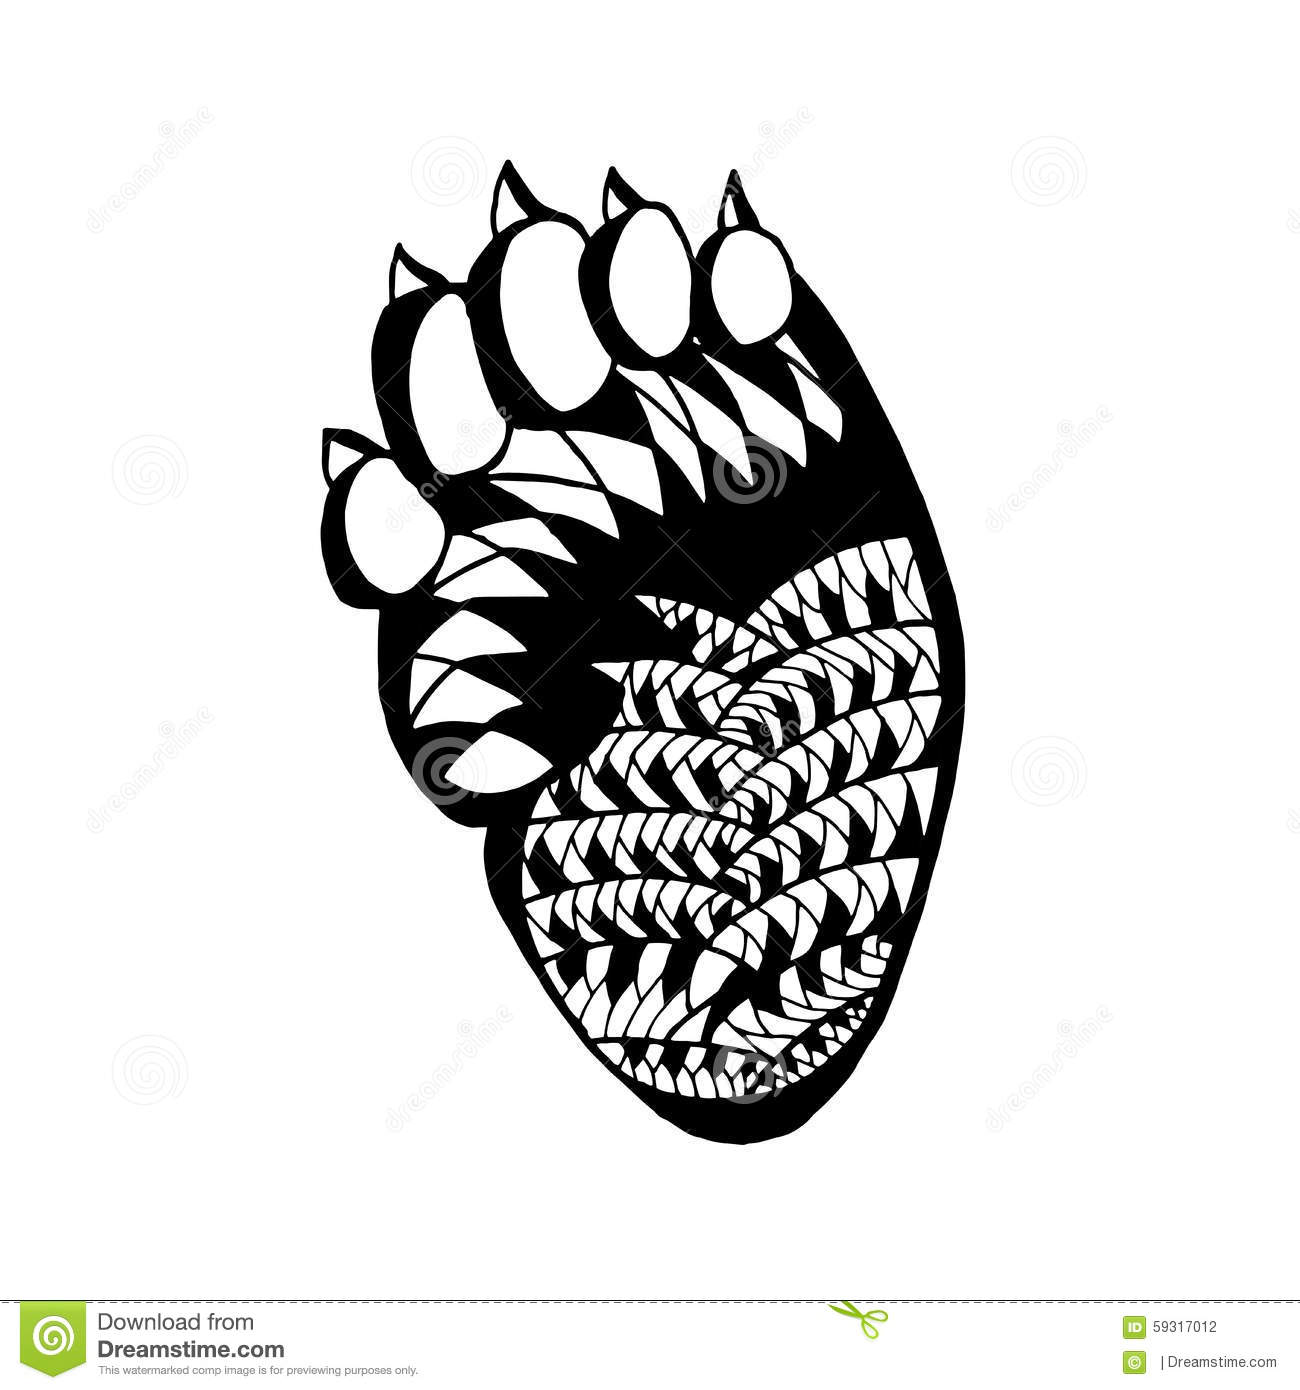 Zentangle Stylized Bear Paw Sketch For Tattoo Or T Shirt